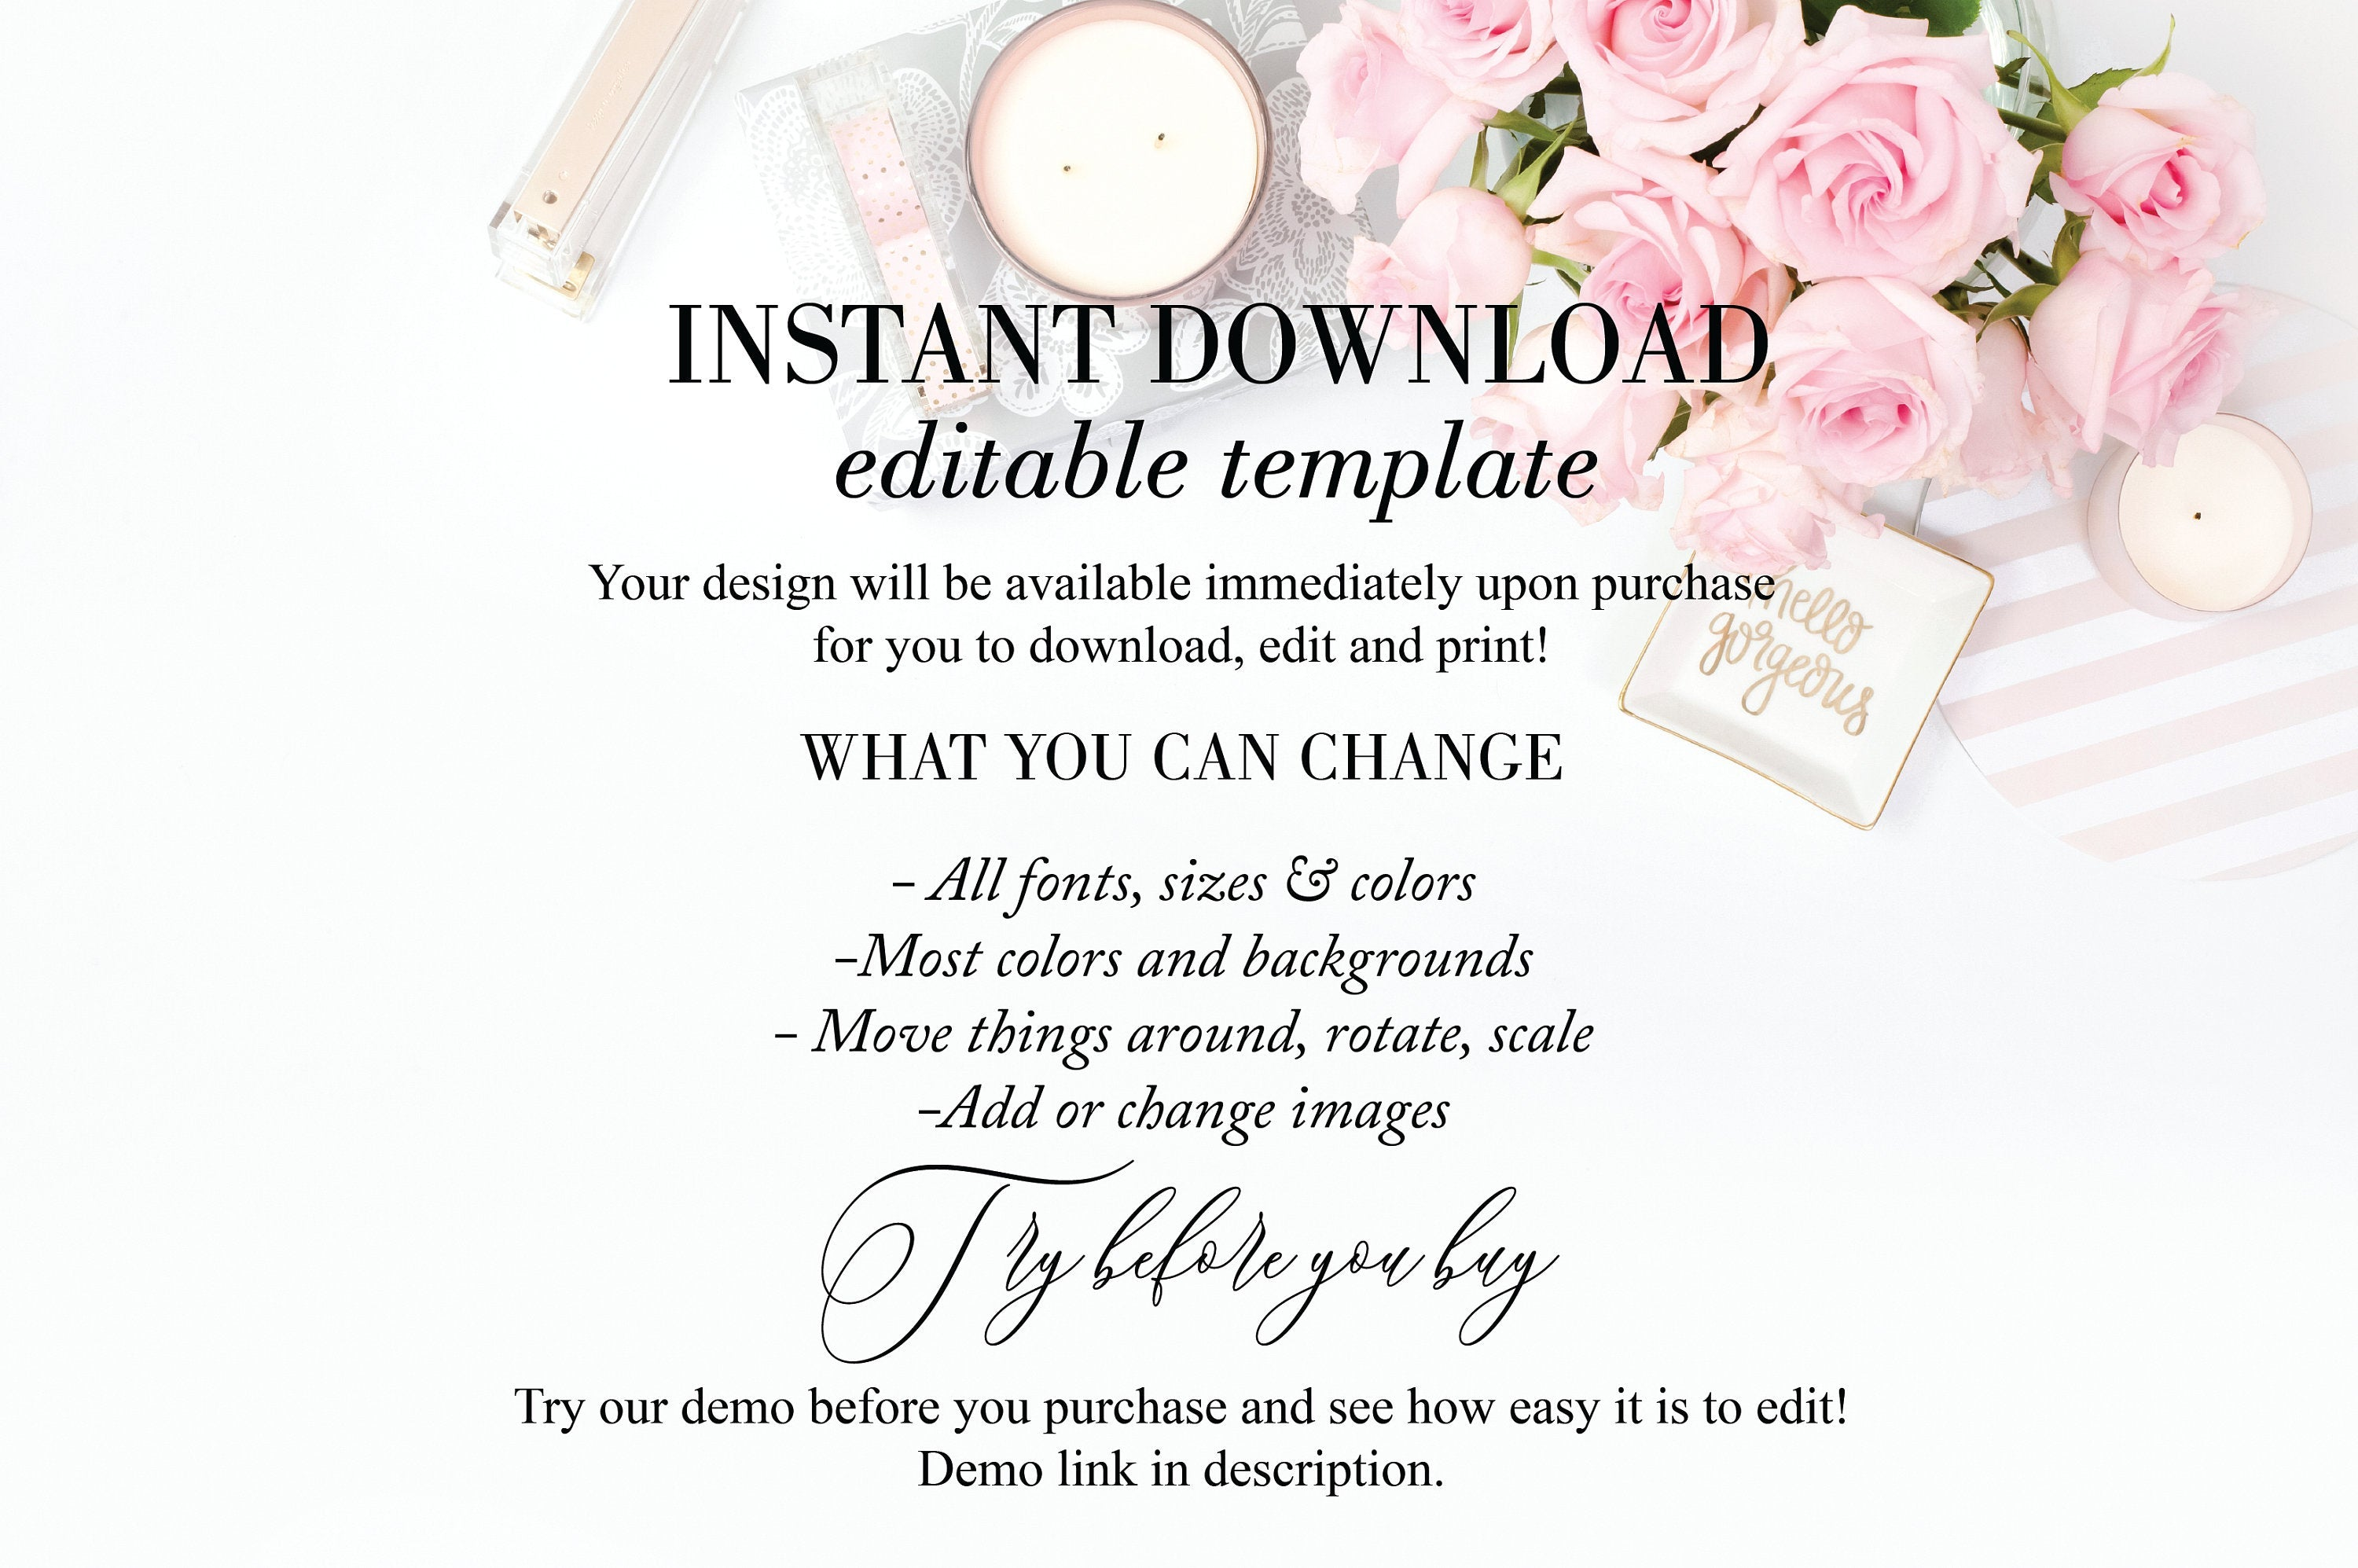 Minimal Wedding Invitation Template Instant Download Templett Printable Wedding Editable - Eileen